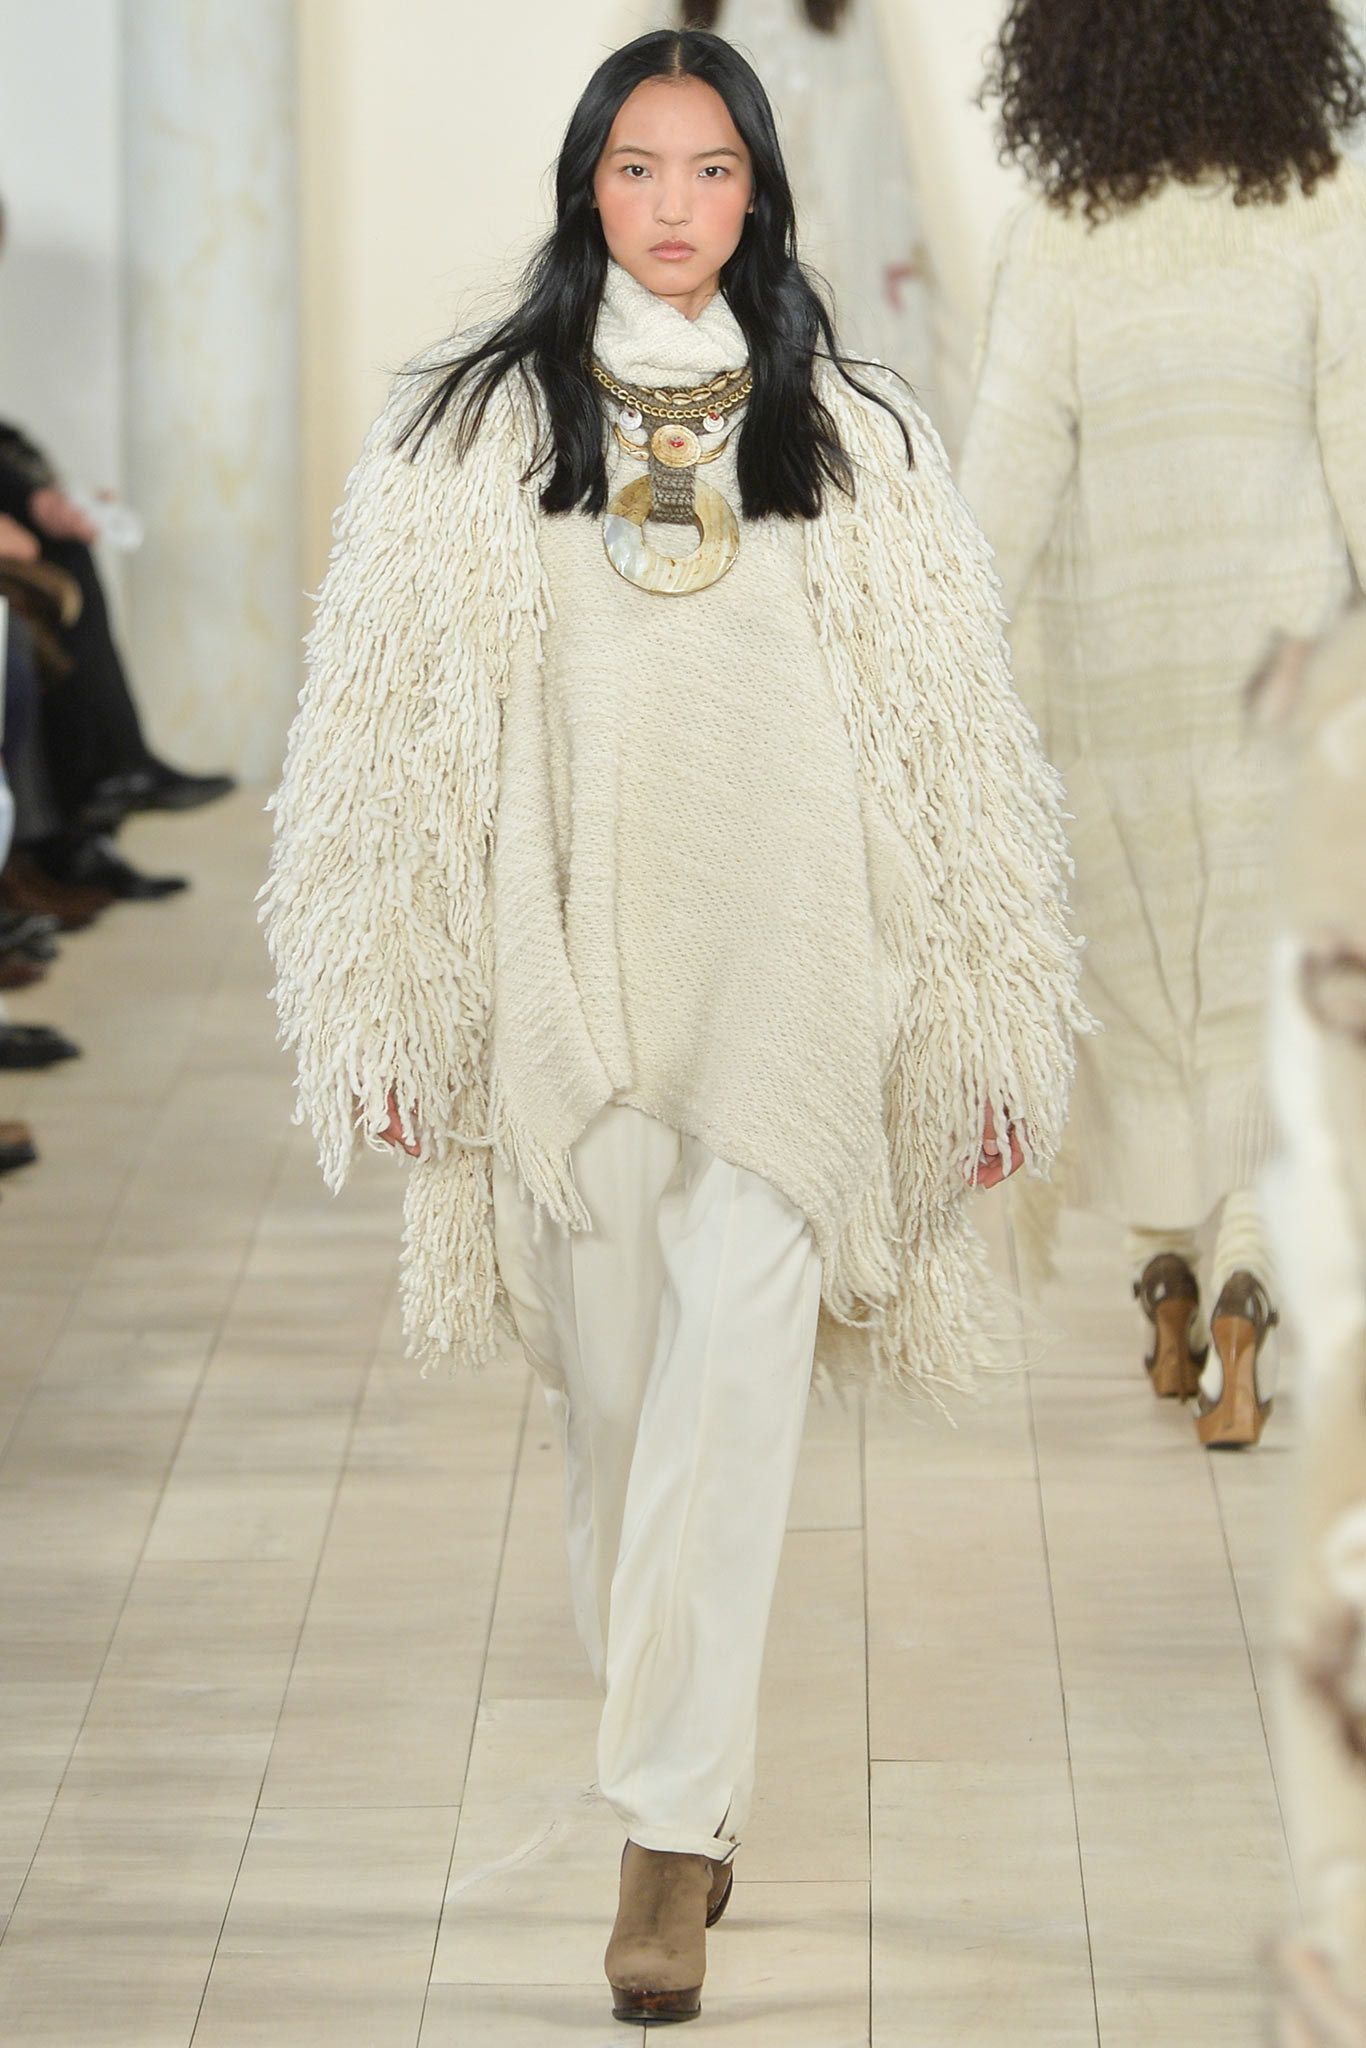 Ralph Lauren Fall 2015 Ready-to-Wear Fashion Show - Luping Wang